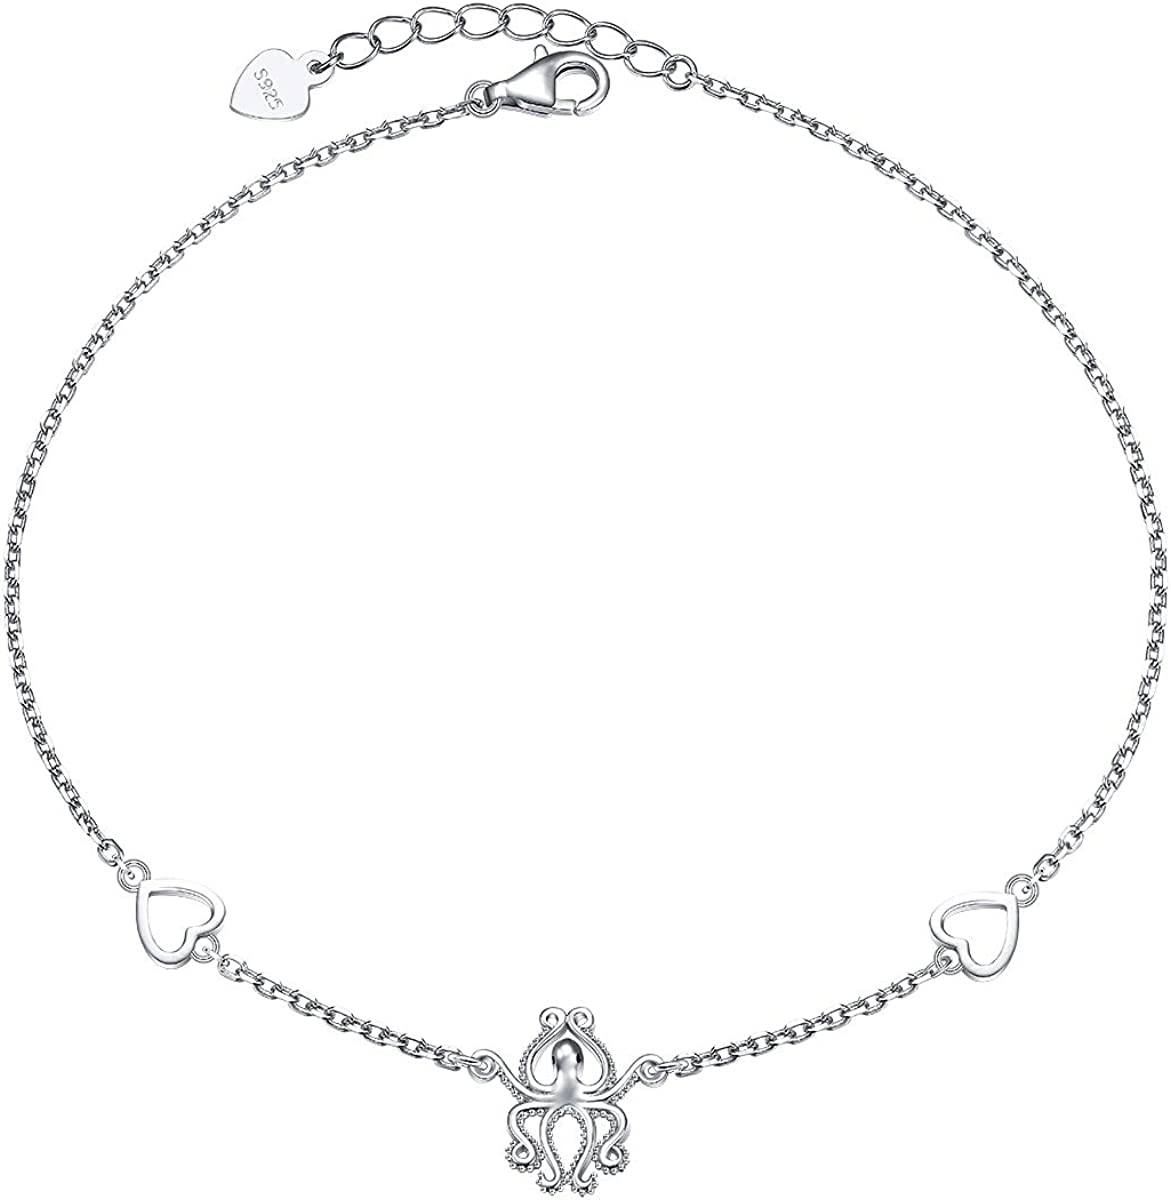 New 0.925 Sterling Silver Octopus Aquatic Animal Pendant Necklace